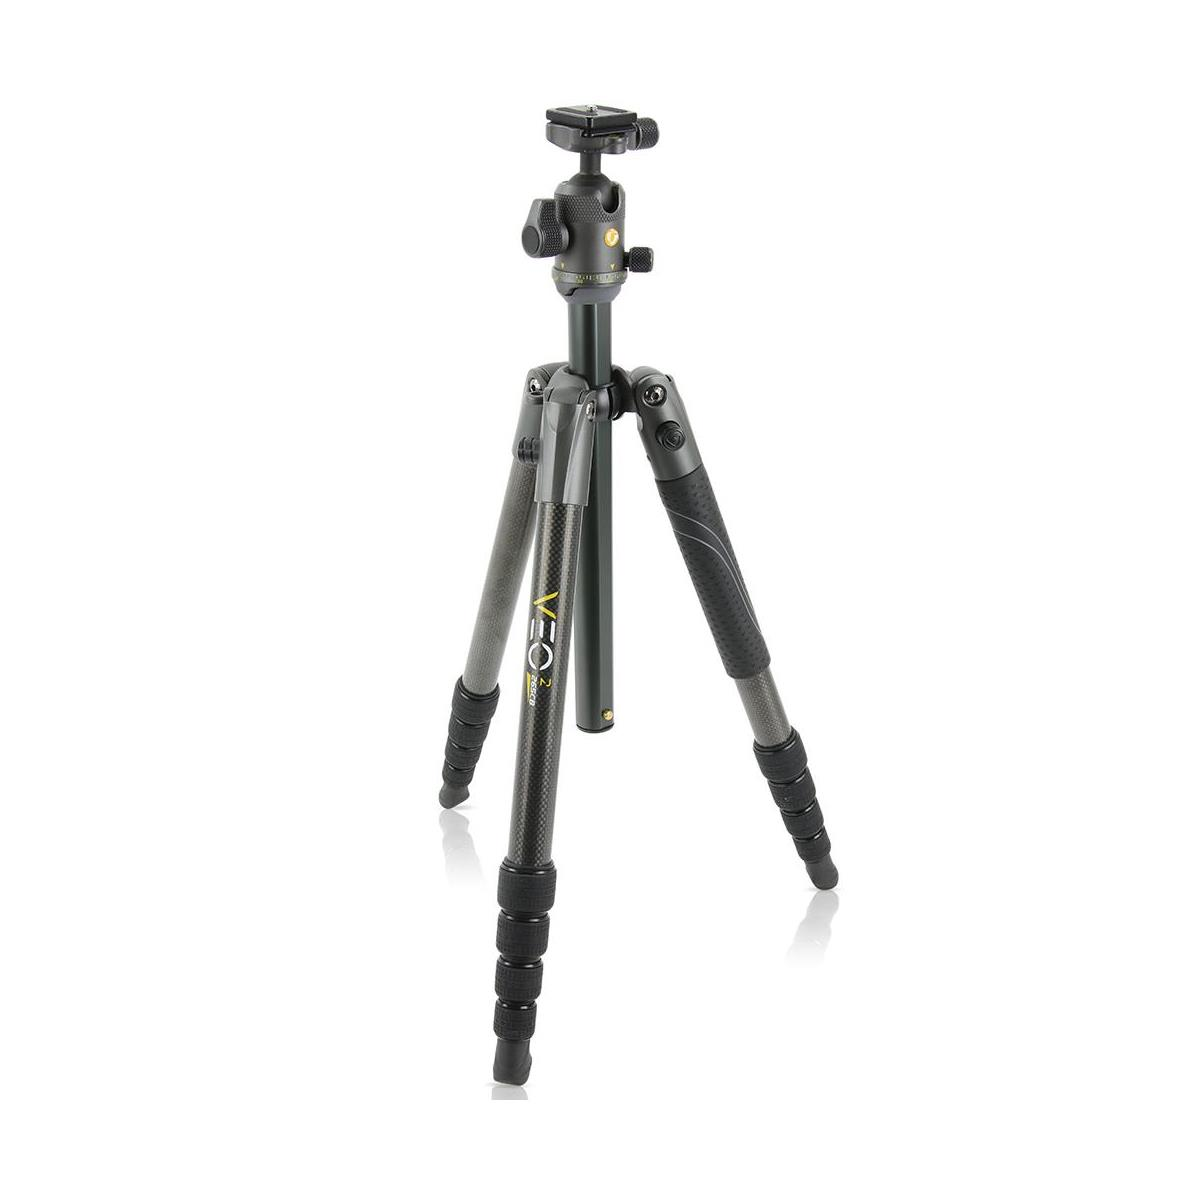 Hot Deal: Vanguard 265CB Carbon Fiber Tripod for $124.95